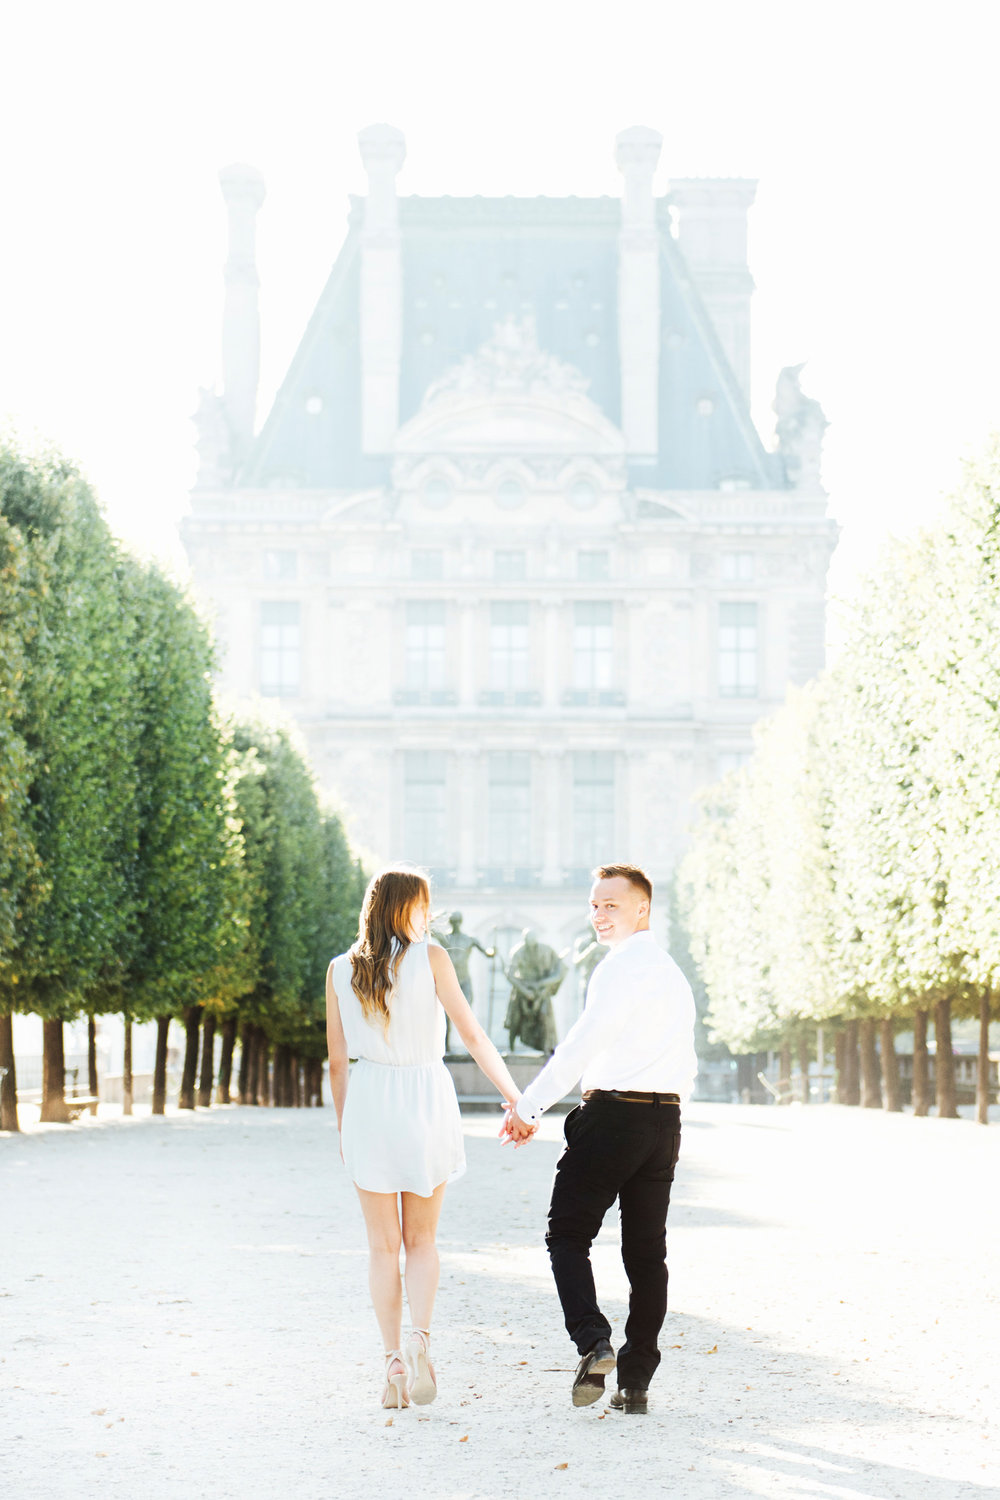 049-katie-mitchell-paris-engagement-photographer.jpg